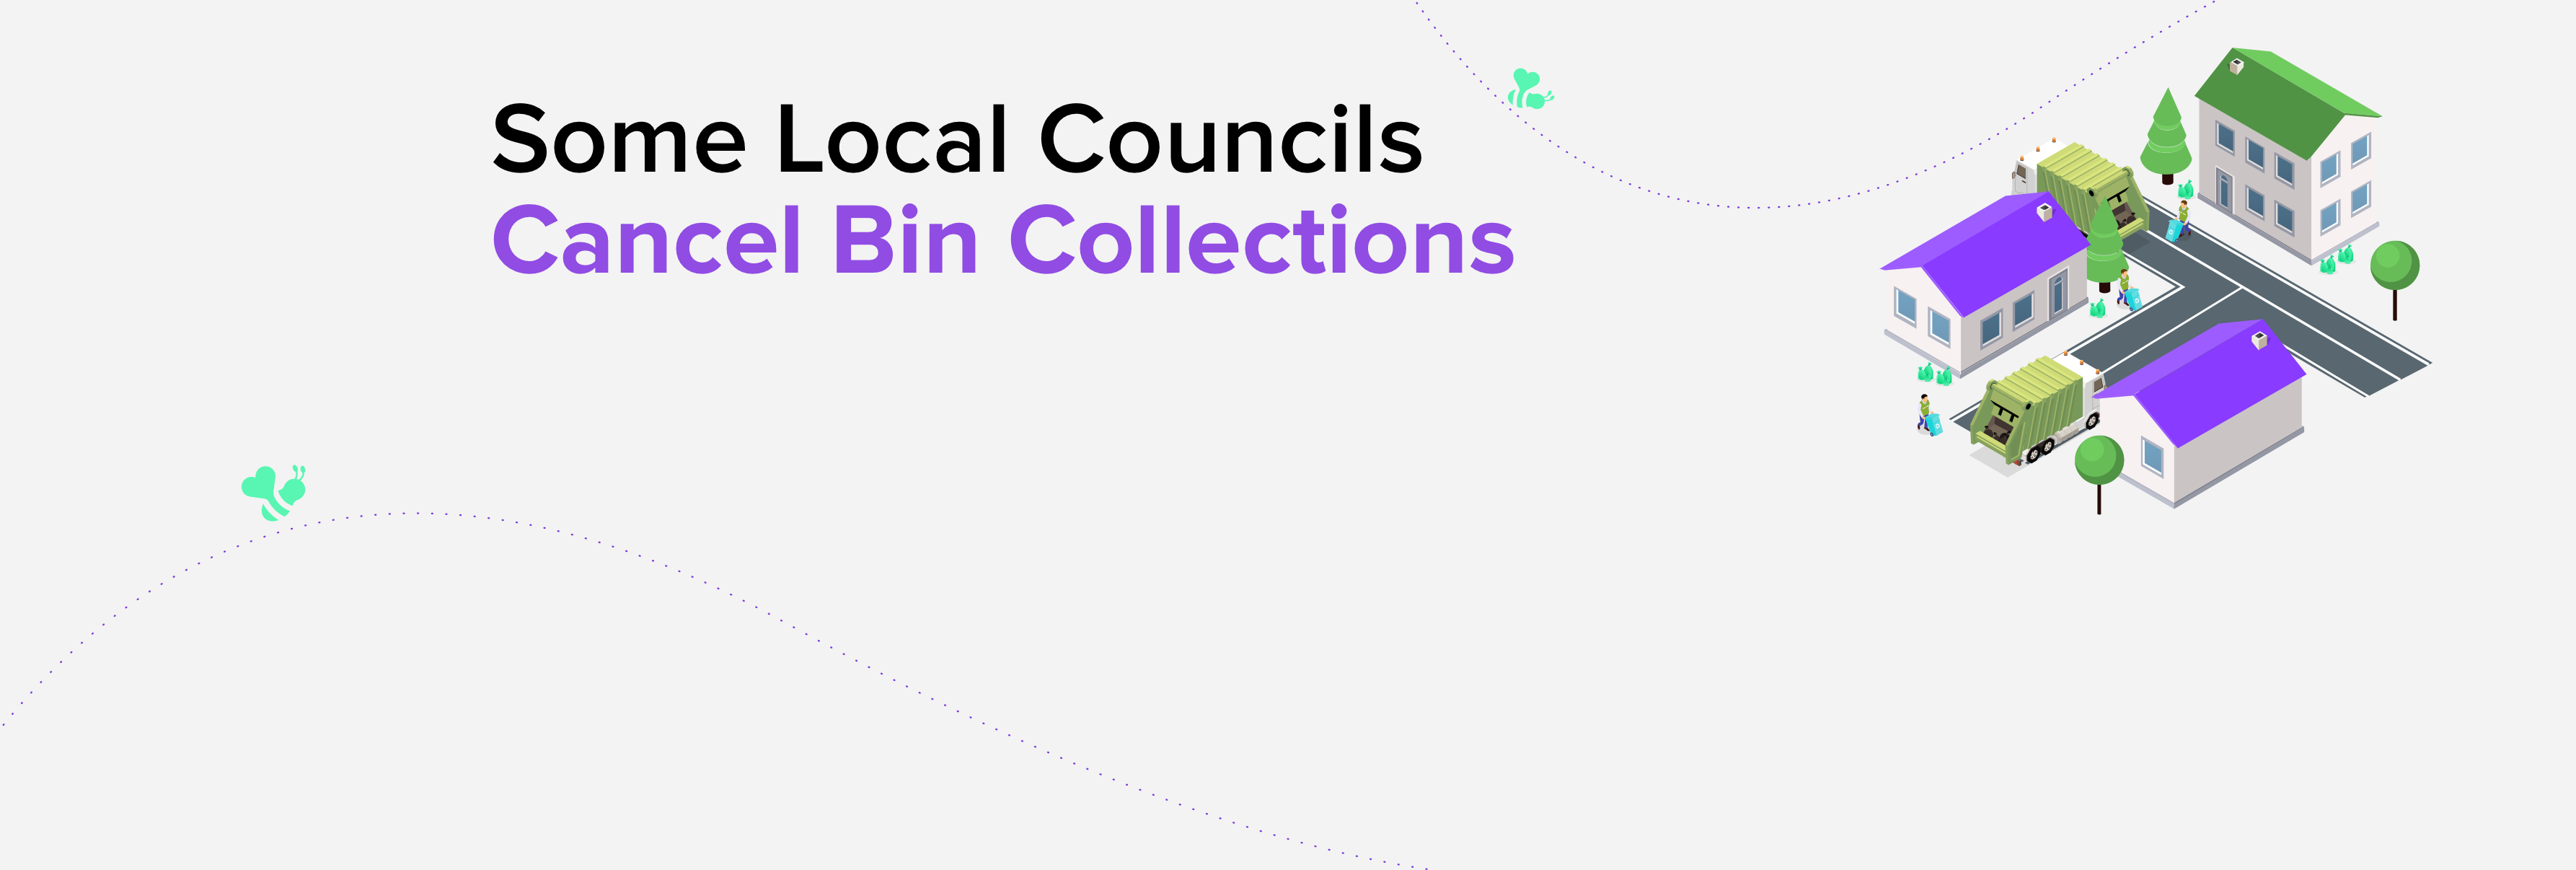 Local Councils Cancel Bin Collections